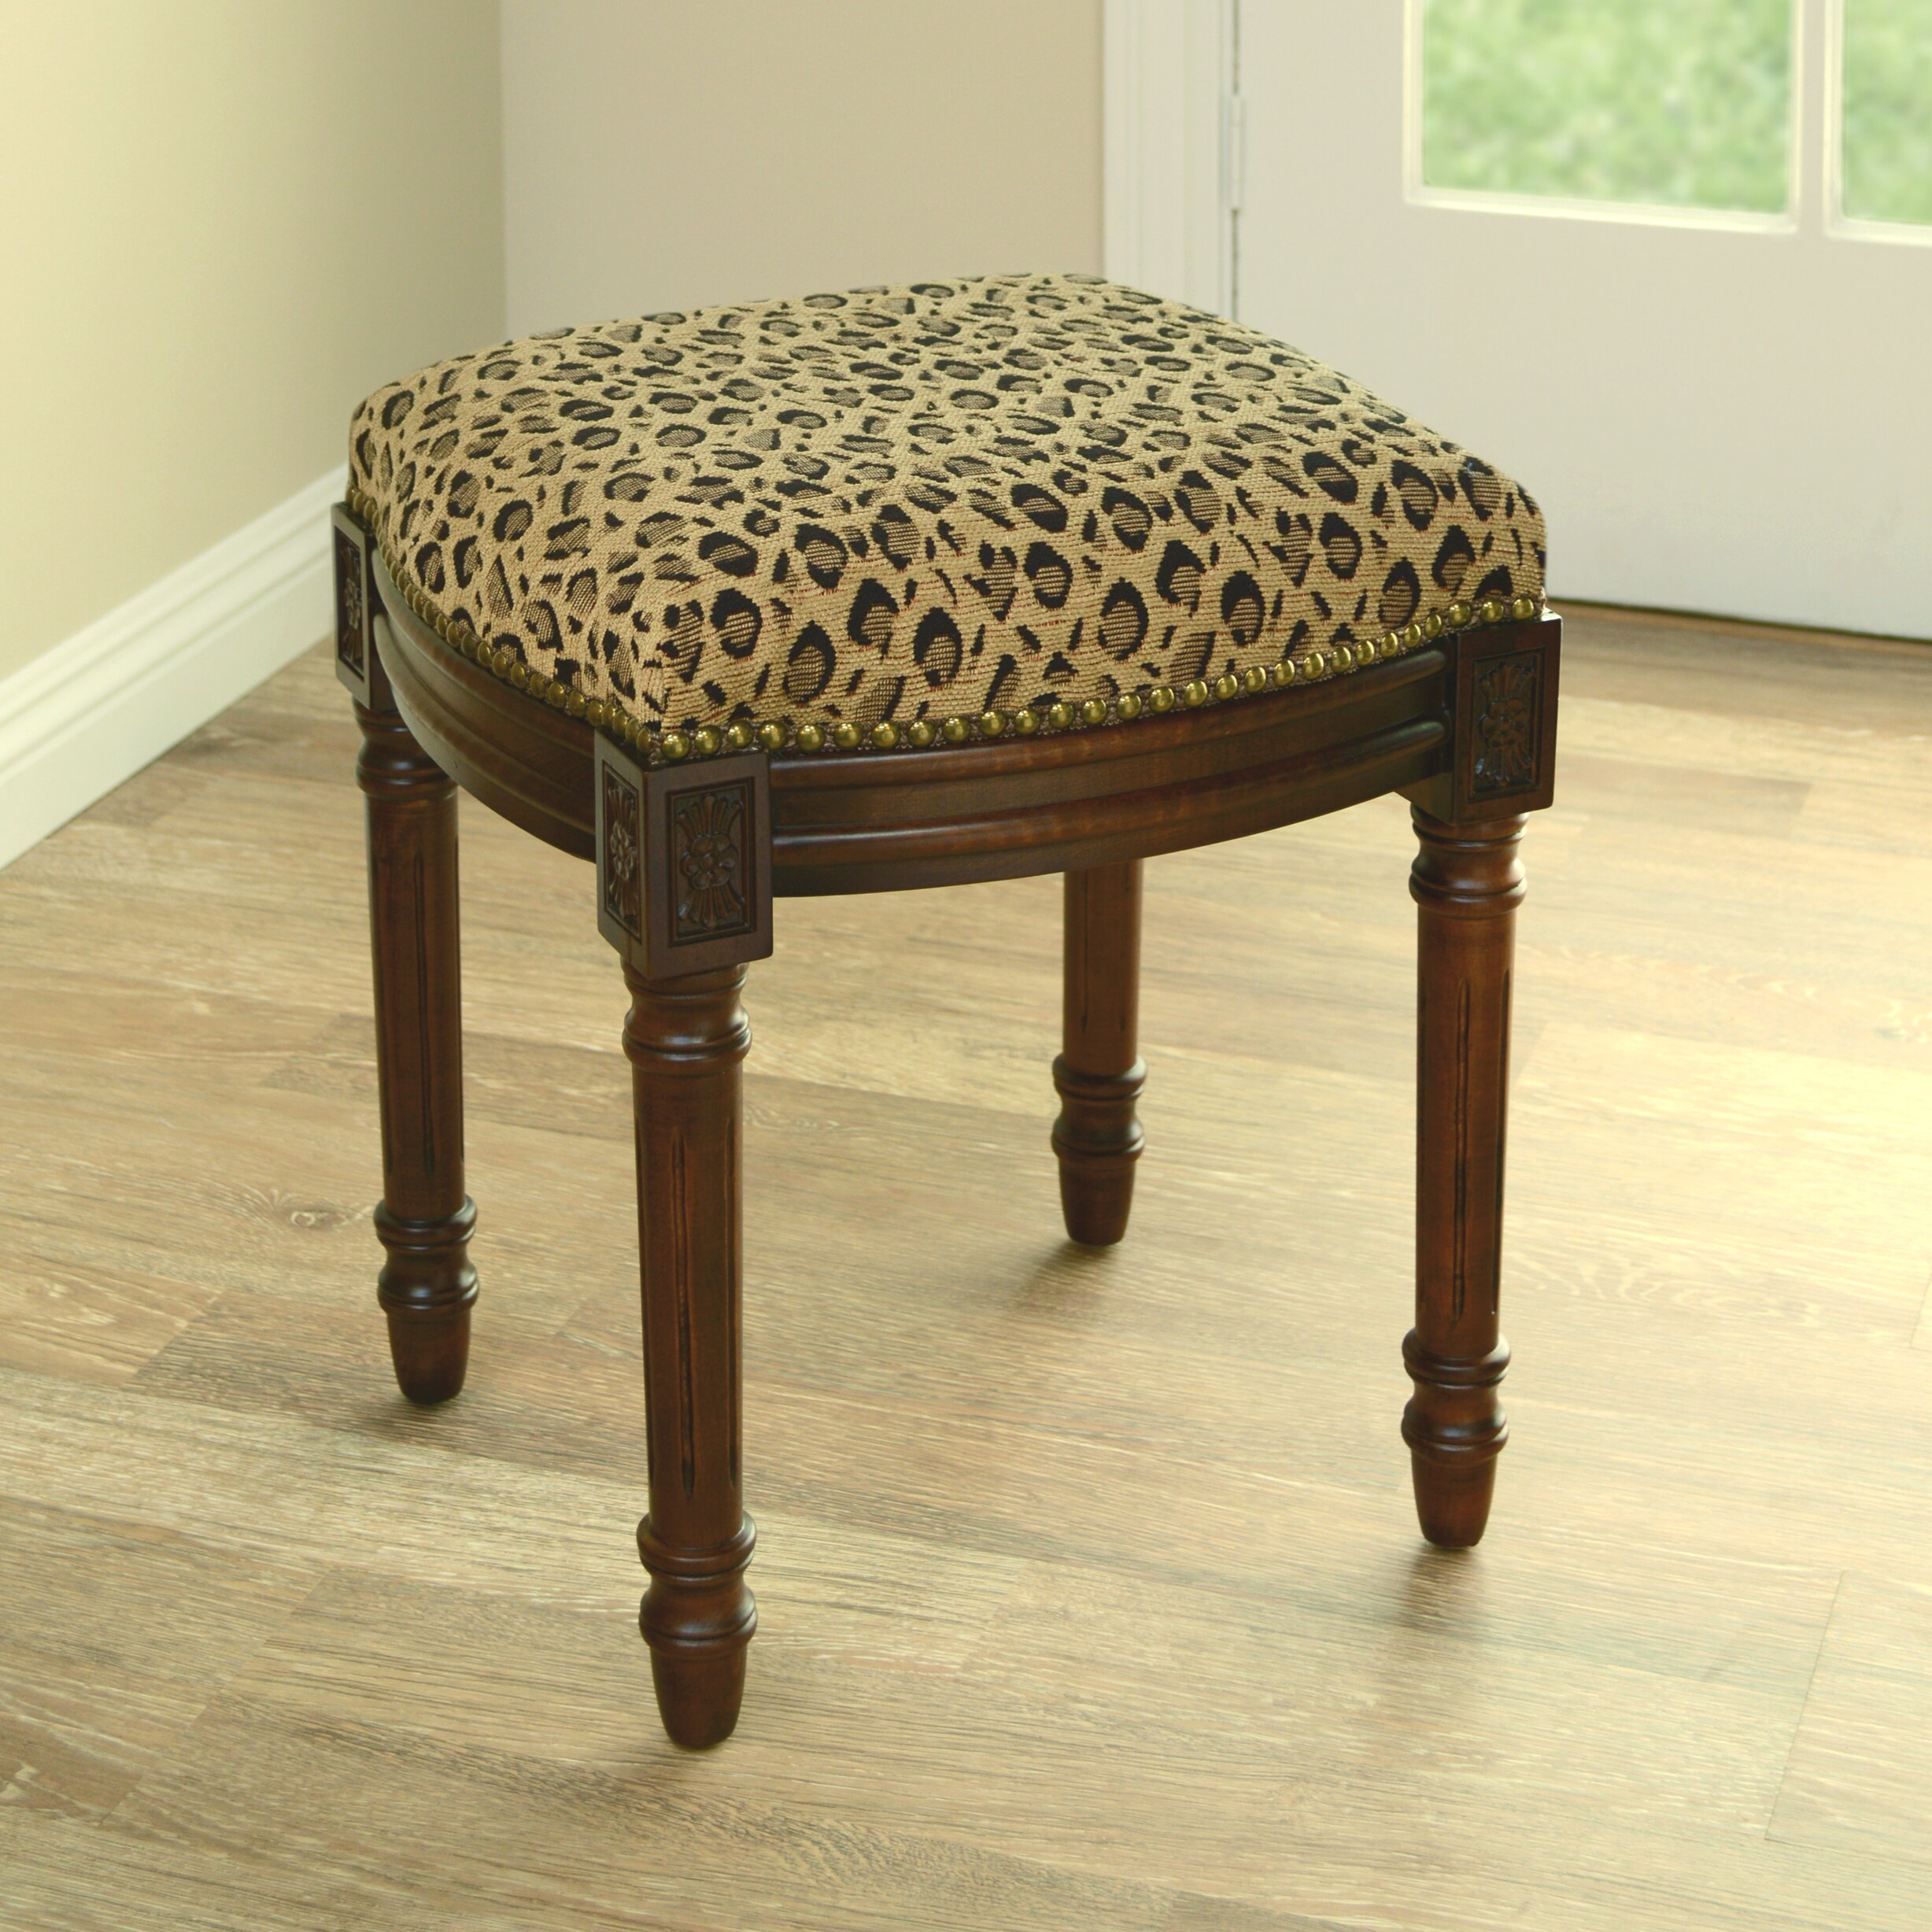 123 Creations Leopard Print Upholstered Vanity Stool